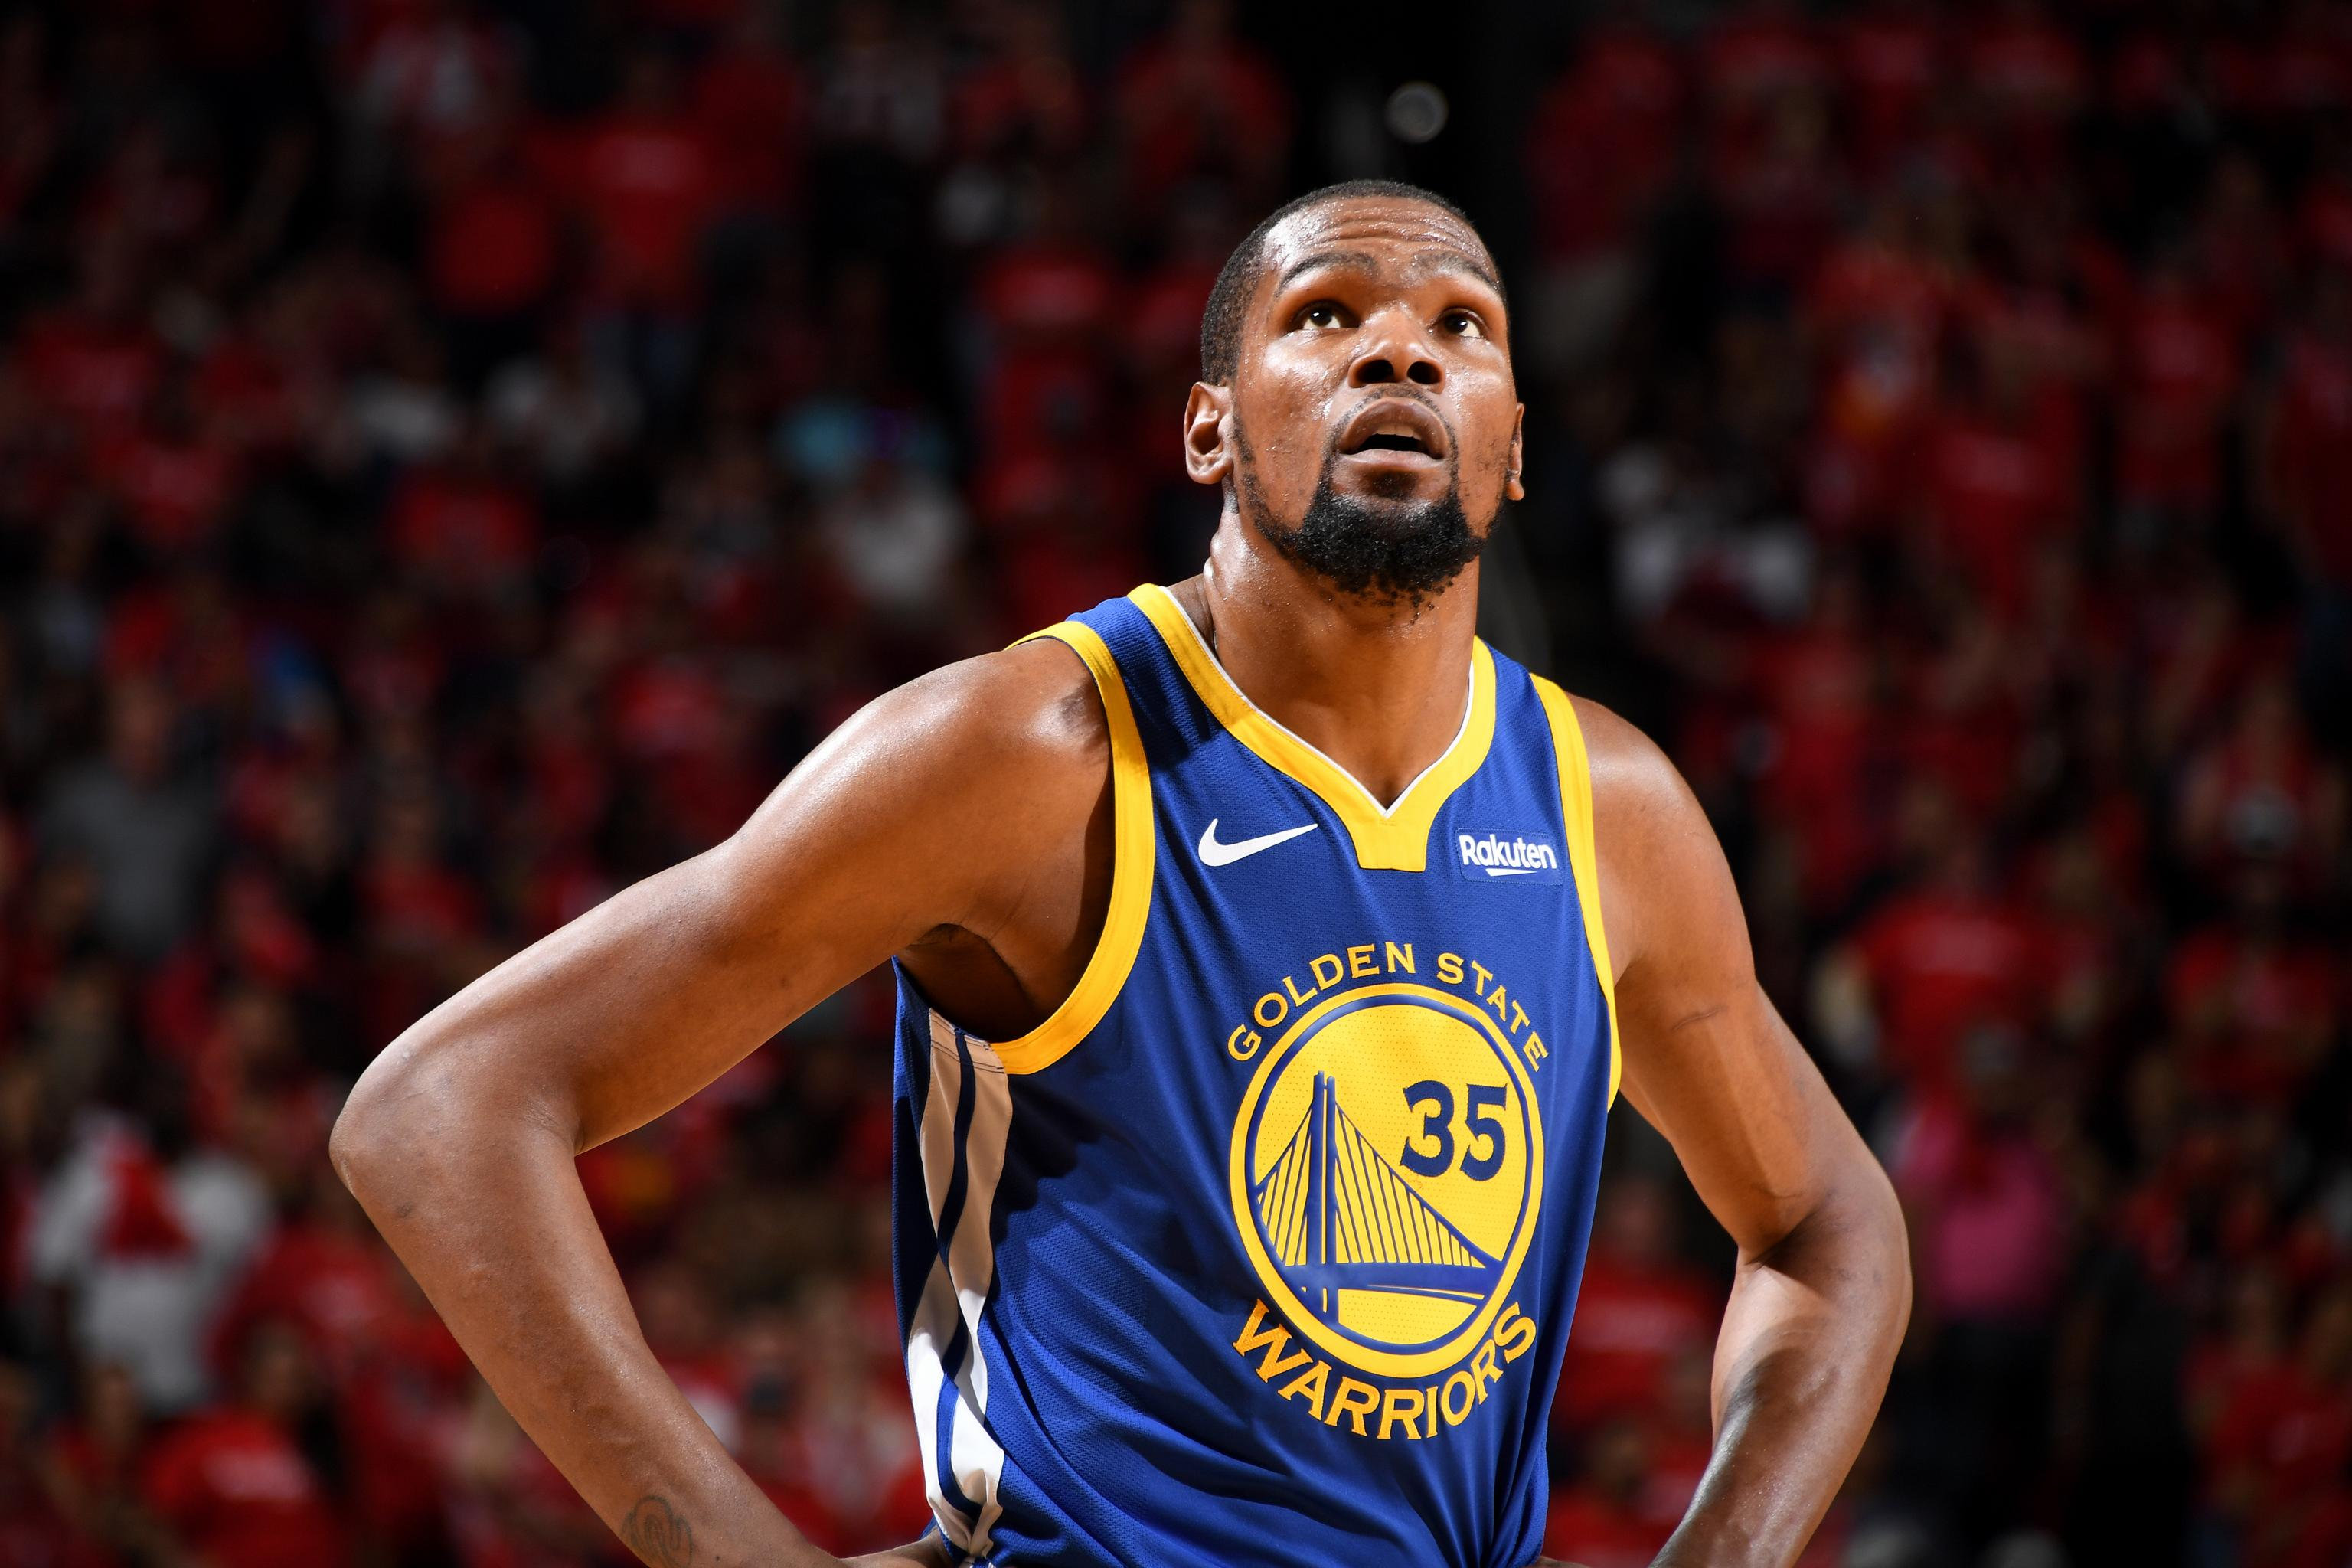 d6bcd0d33d8 Woj on Kevin Durant   I Think  Warriors  Bracing for Possibly Seismic  Change